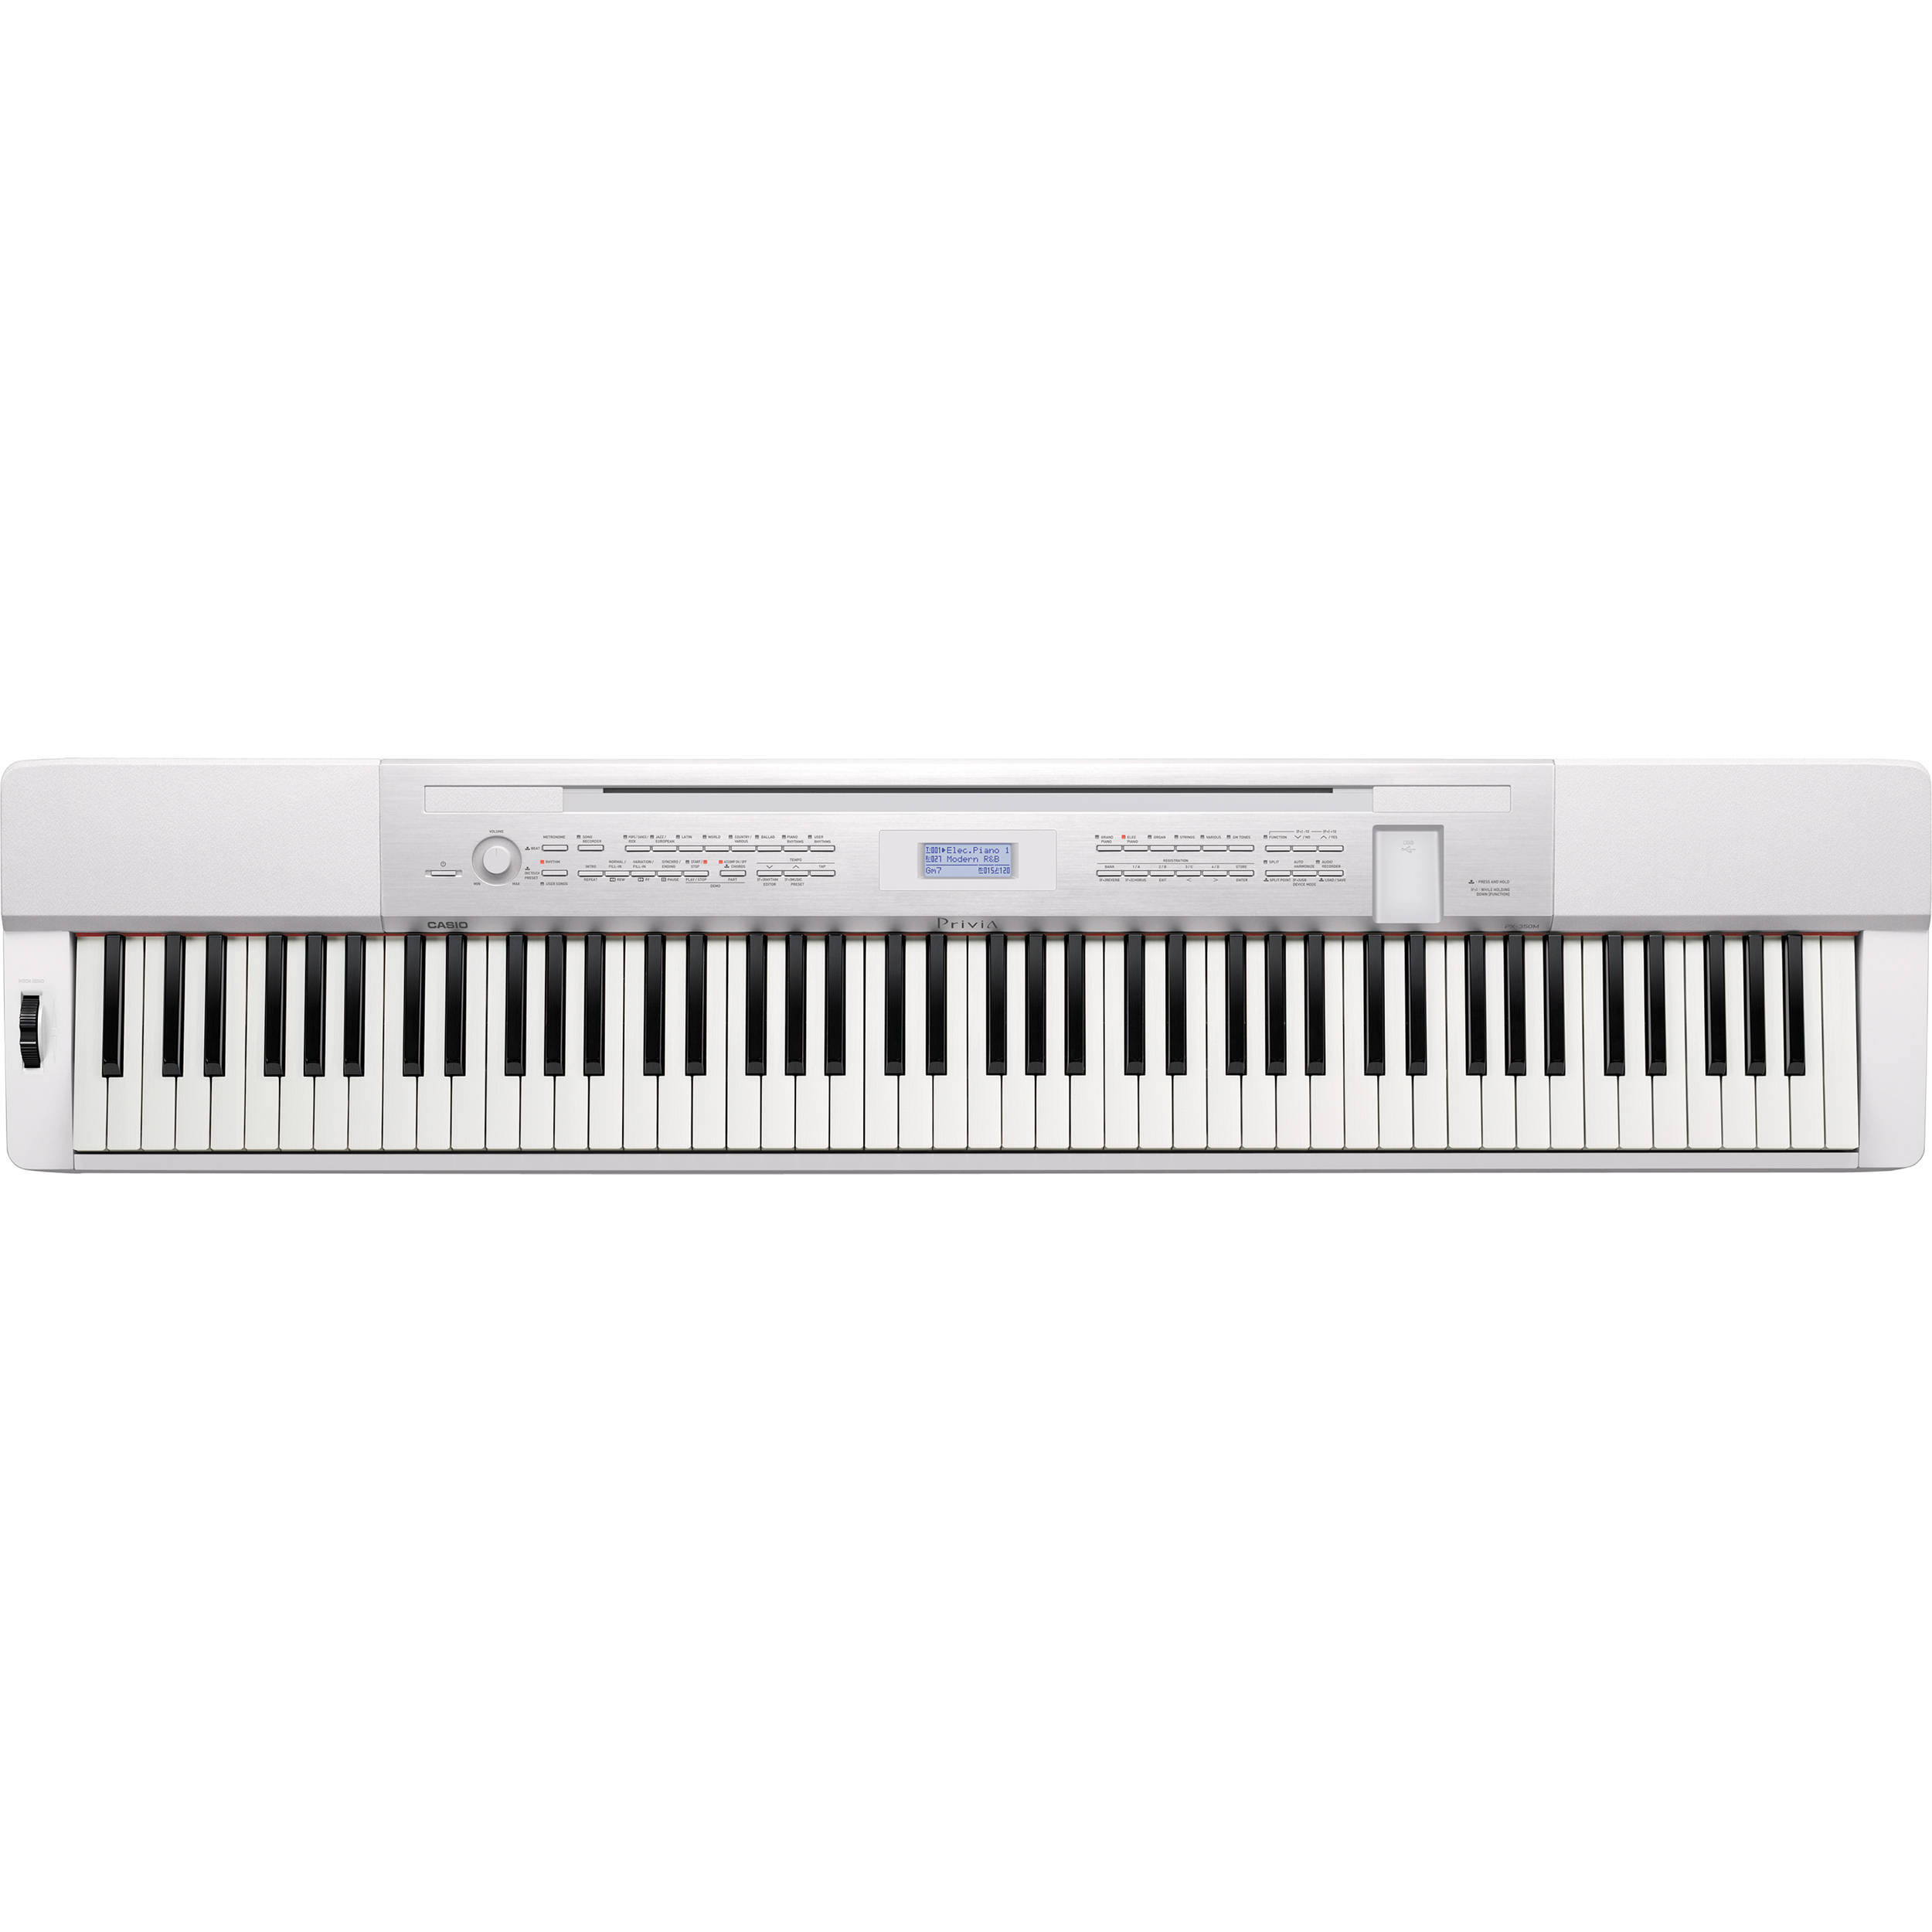 casio px 350 privia 88 key digital piano white px 350we b h. Black Bedroom Furniture Sets. Home Design Ideas